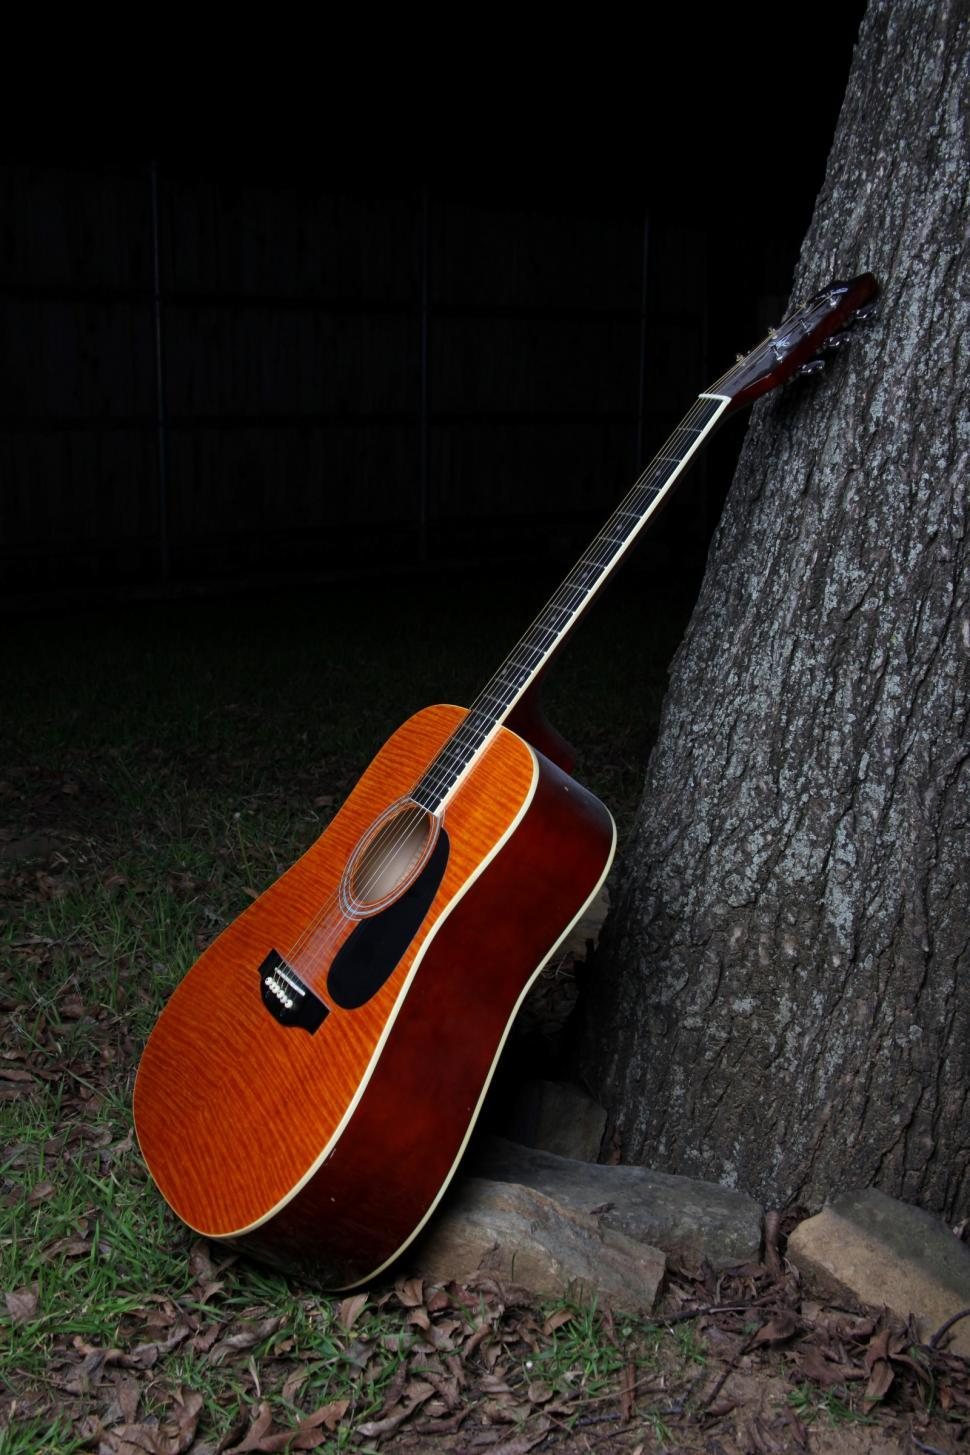 Download Free Stock HD Photo of Guitar leaning against a tree. Online